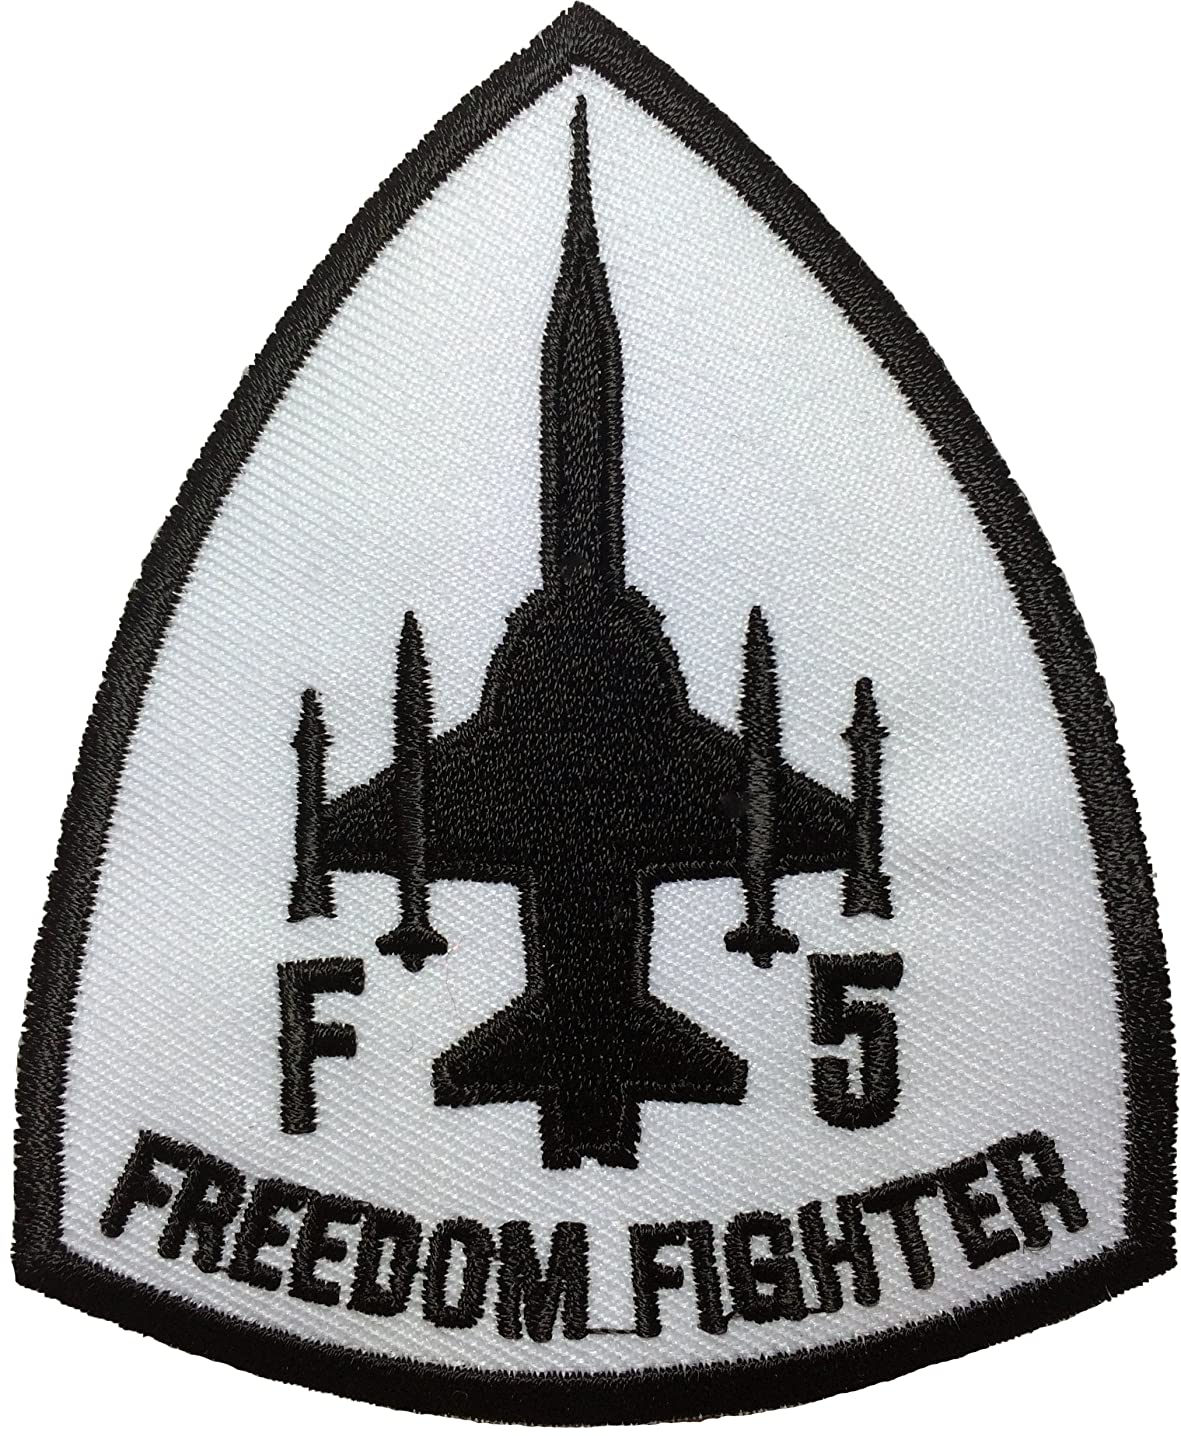 F5 fighter freedom (white)Pilot Military Band Logo Jacket Vest shirt hat blanket backpack T shirt Patches Embroidered Appliques Symbol Badge Cloth Sign Costume Gift 7.5 x 9cm